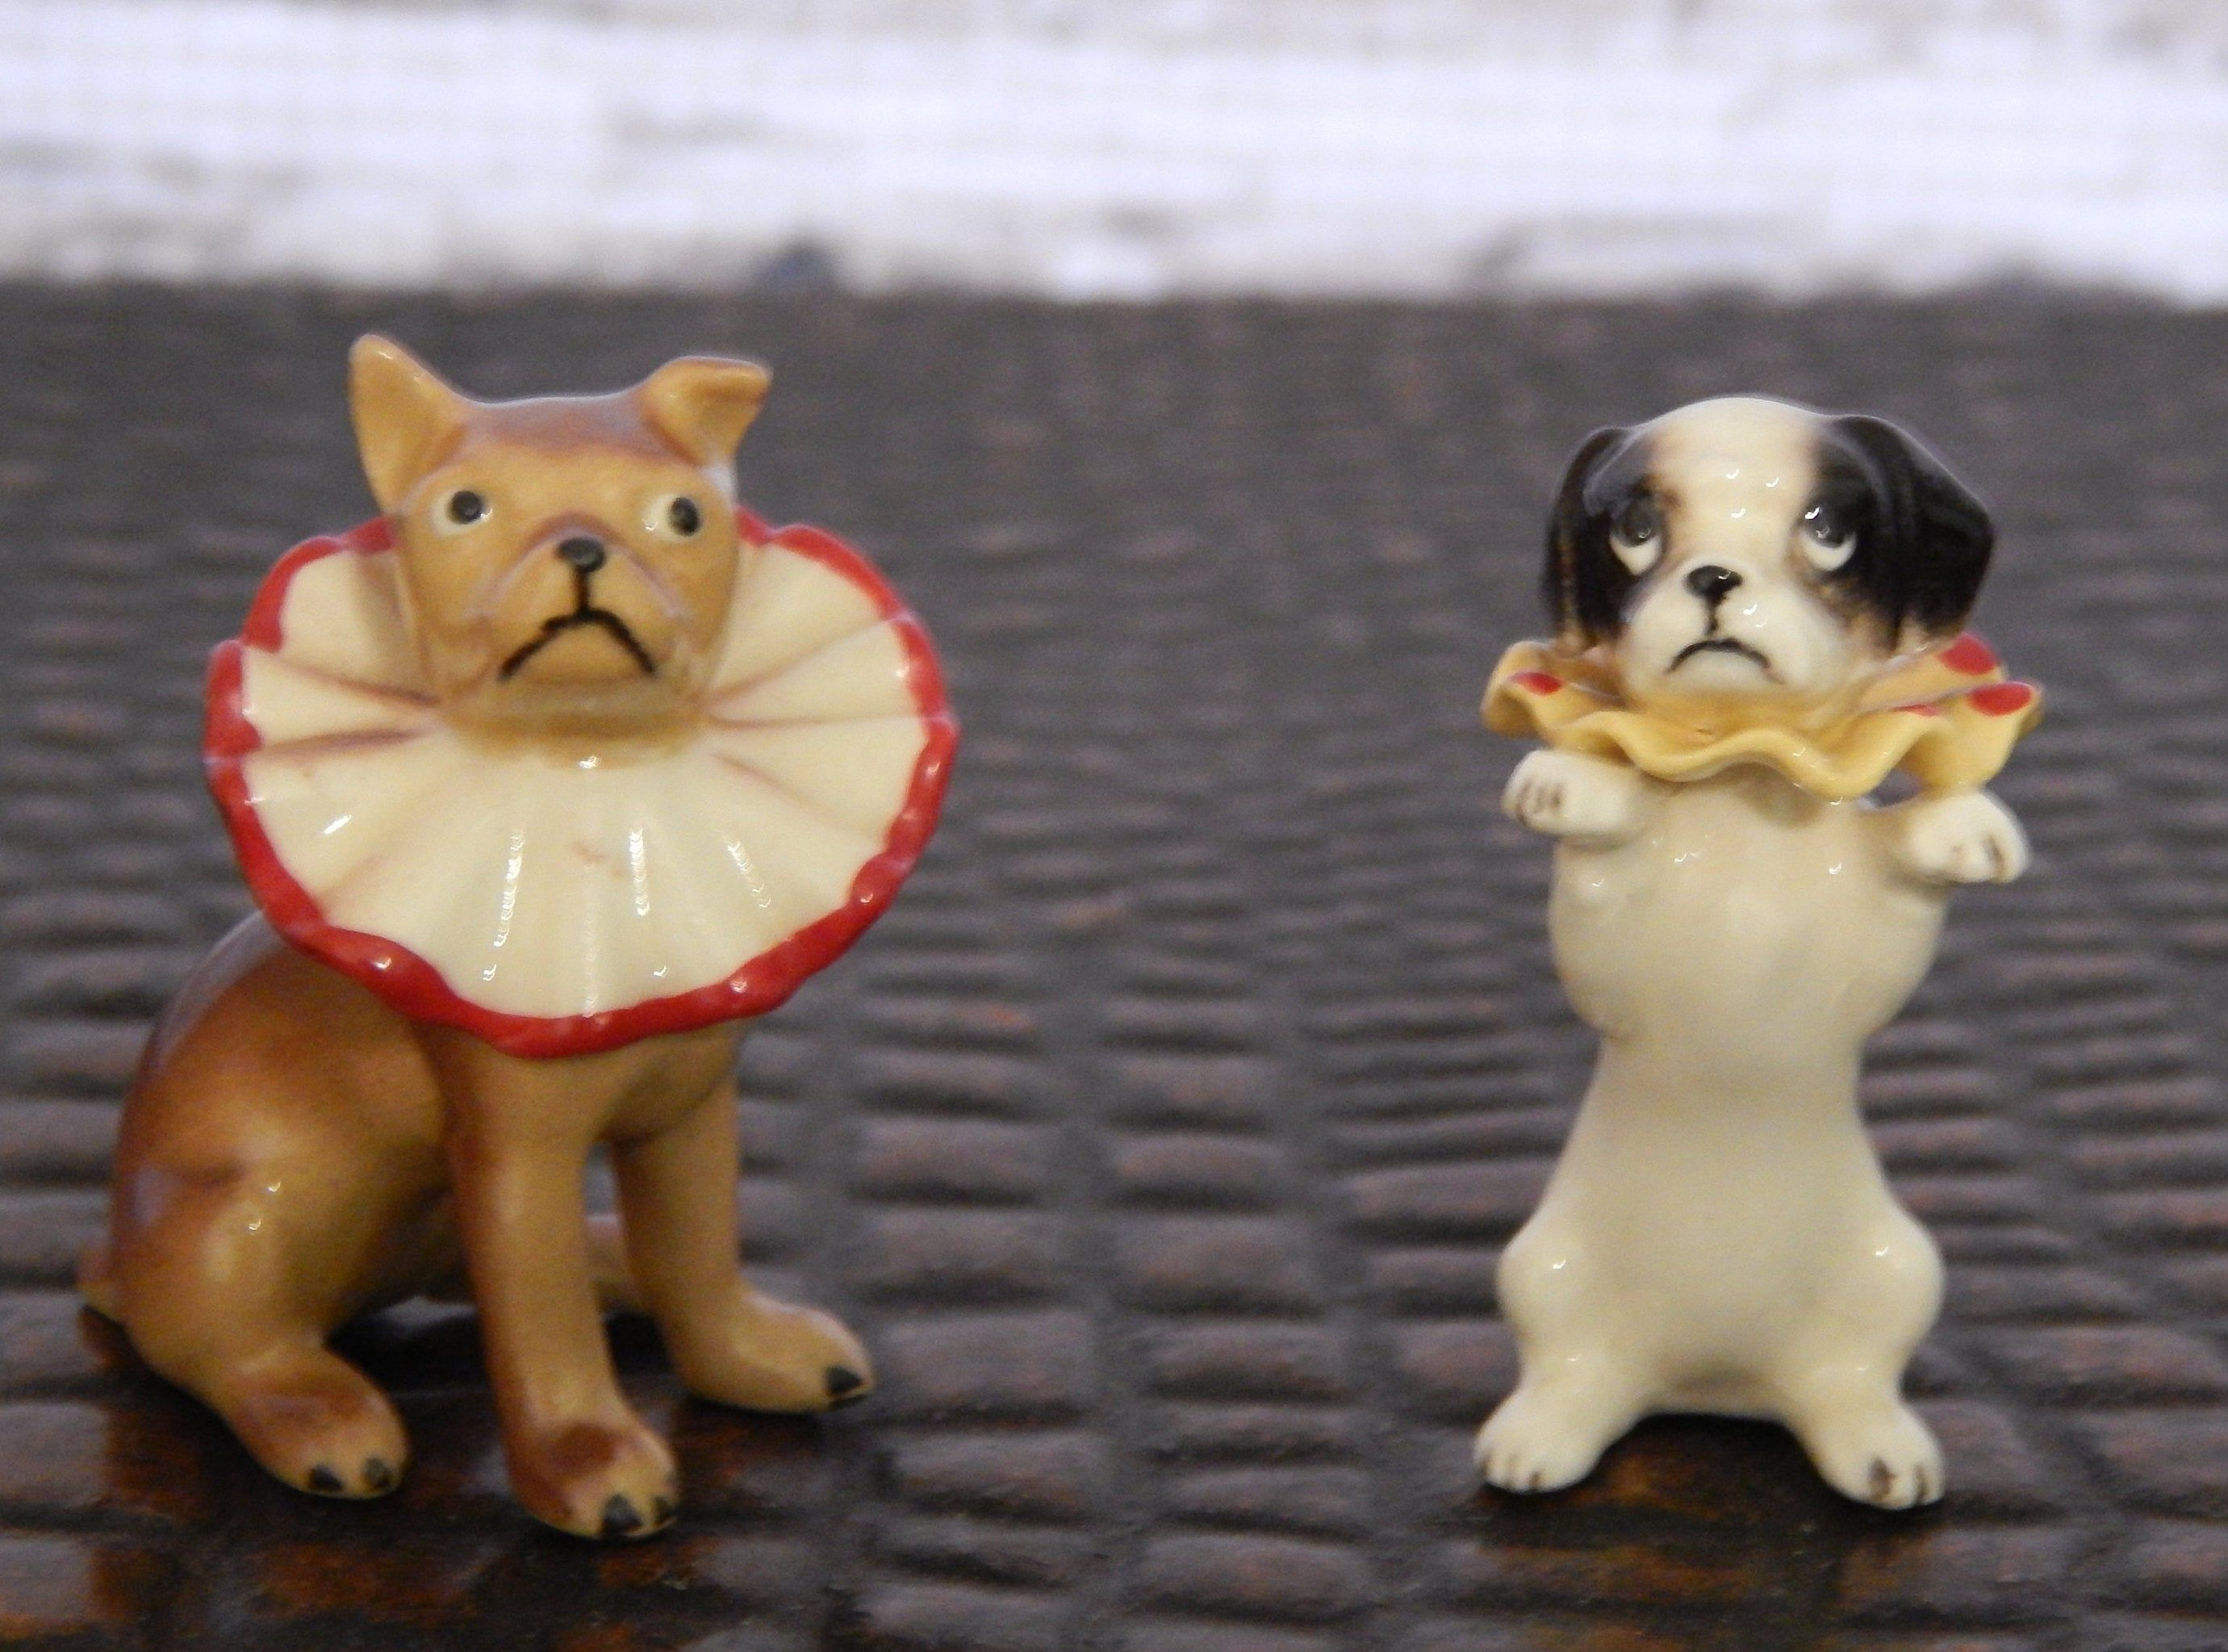 Vintage Hagen Renaker Collectable Circus Animals 1950s Rare Etsy Dog Figurines Collectible Pottery Circus Animals